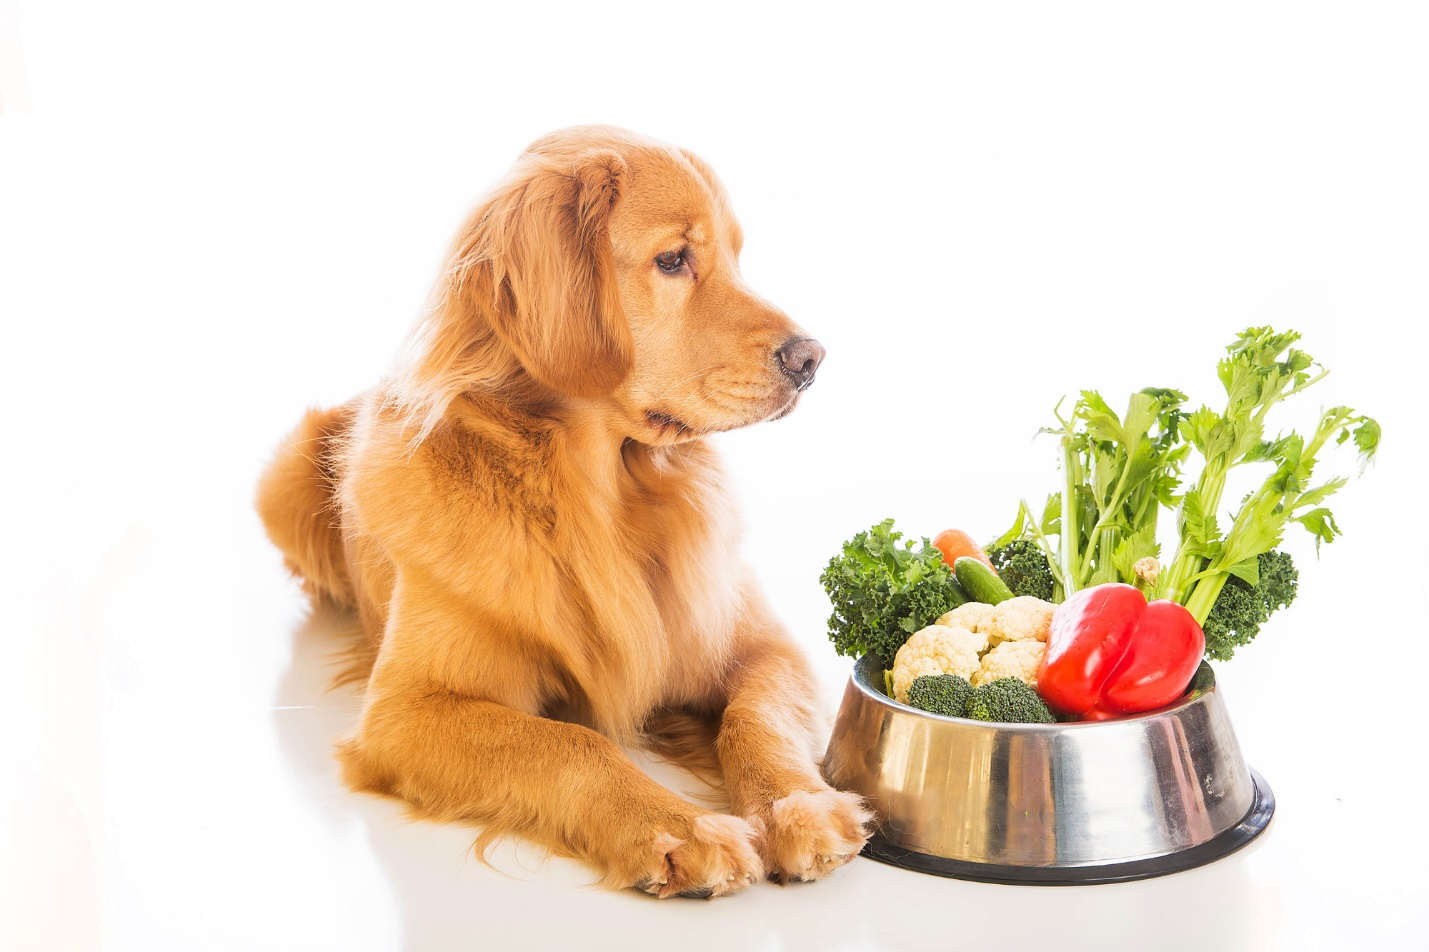 Pampered Pooch: What Are the Healthiest Dog Meals?